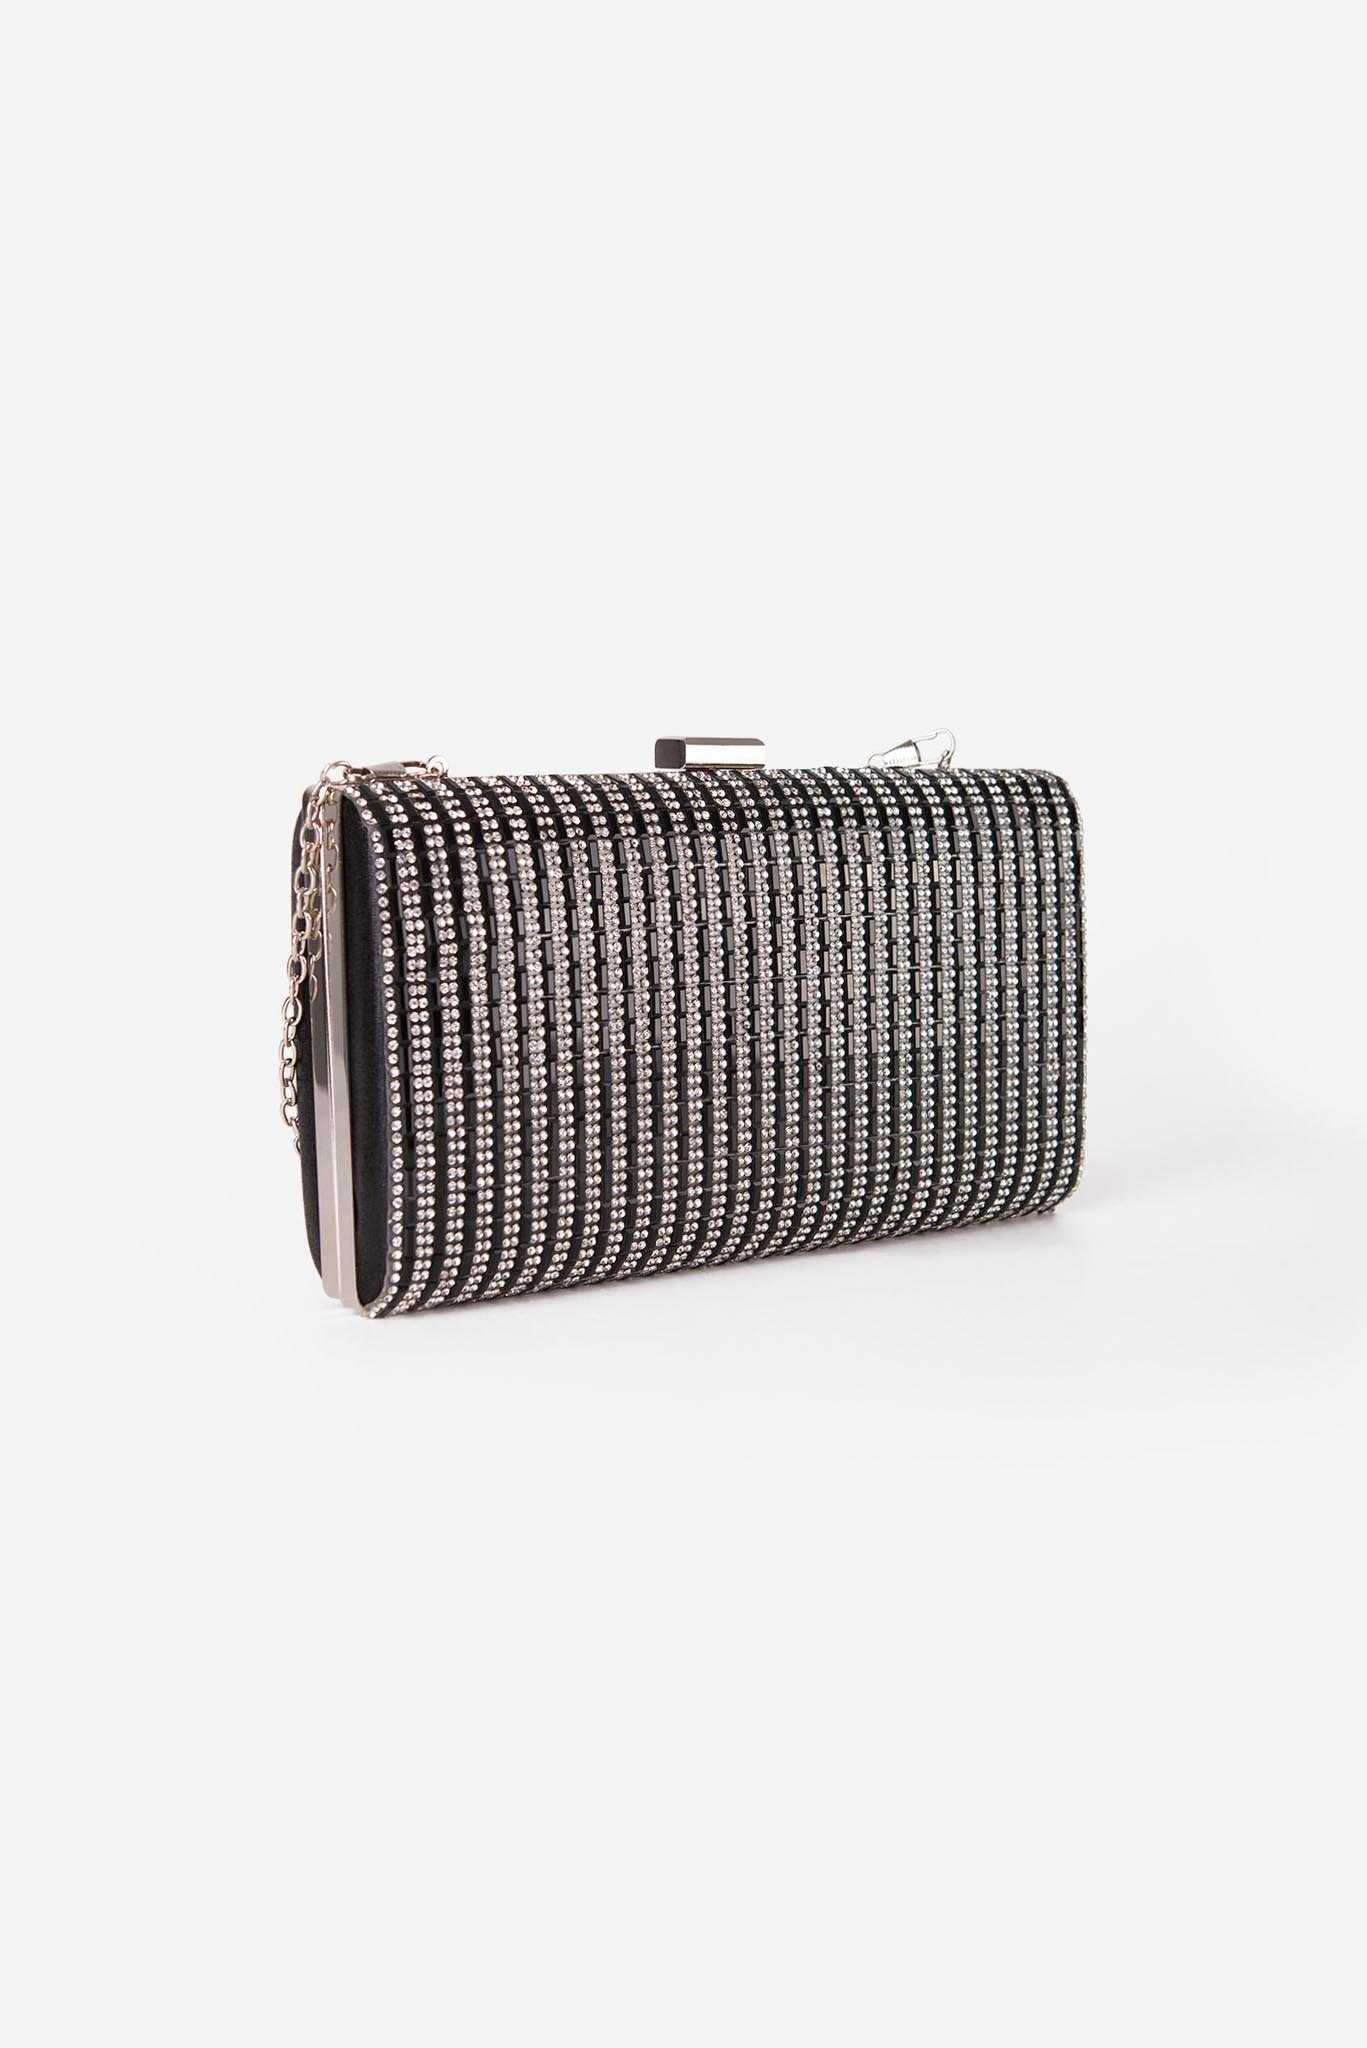 Rhinestone Clutch - Black | Raw Orange